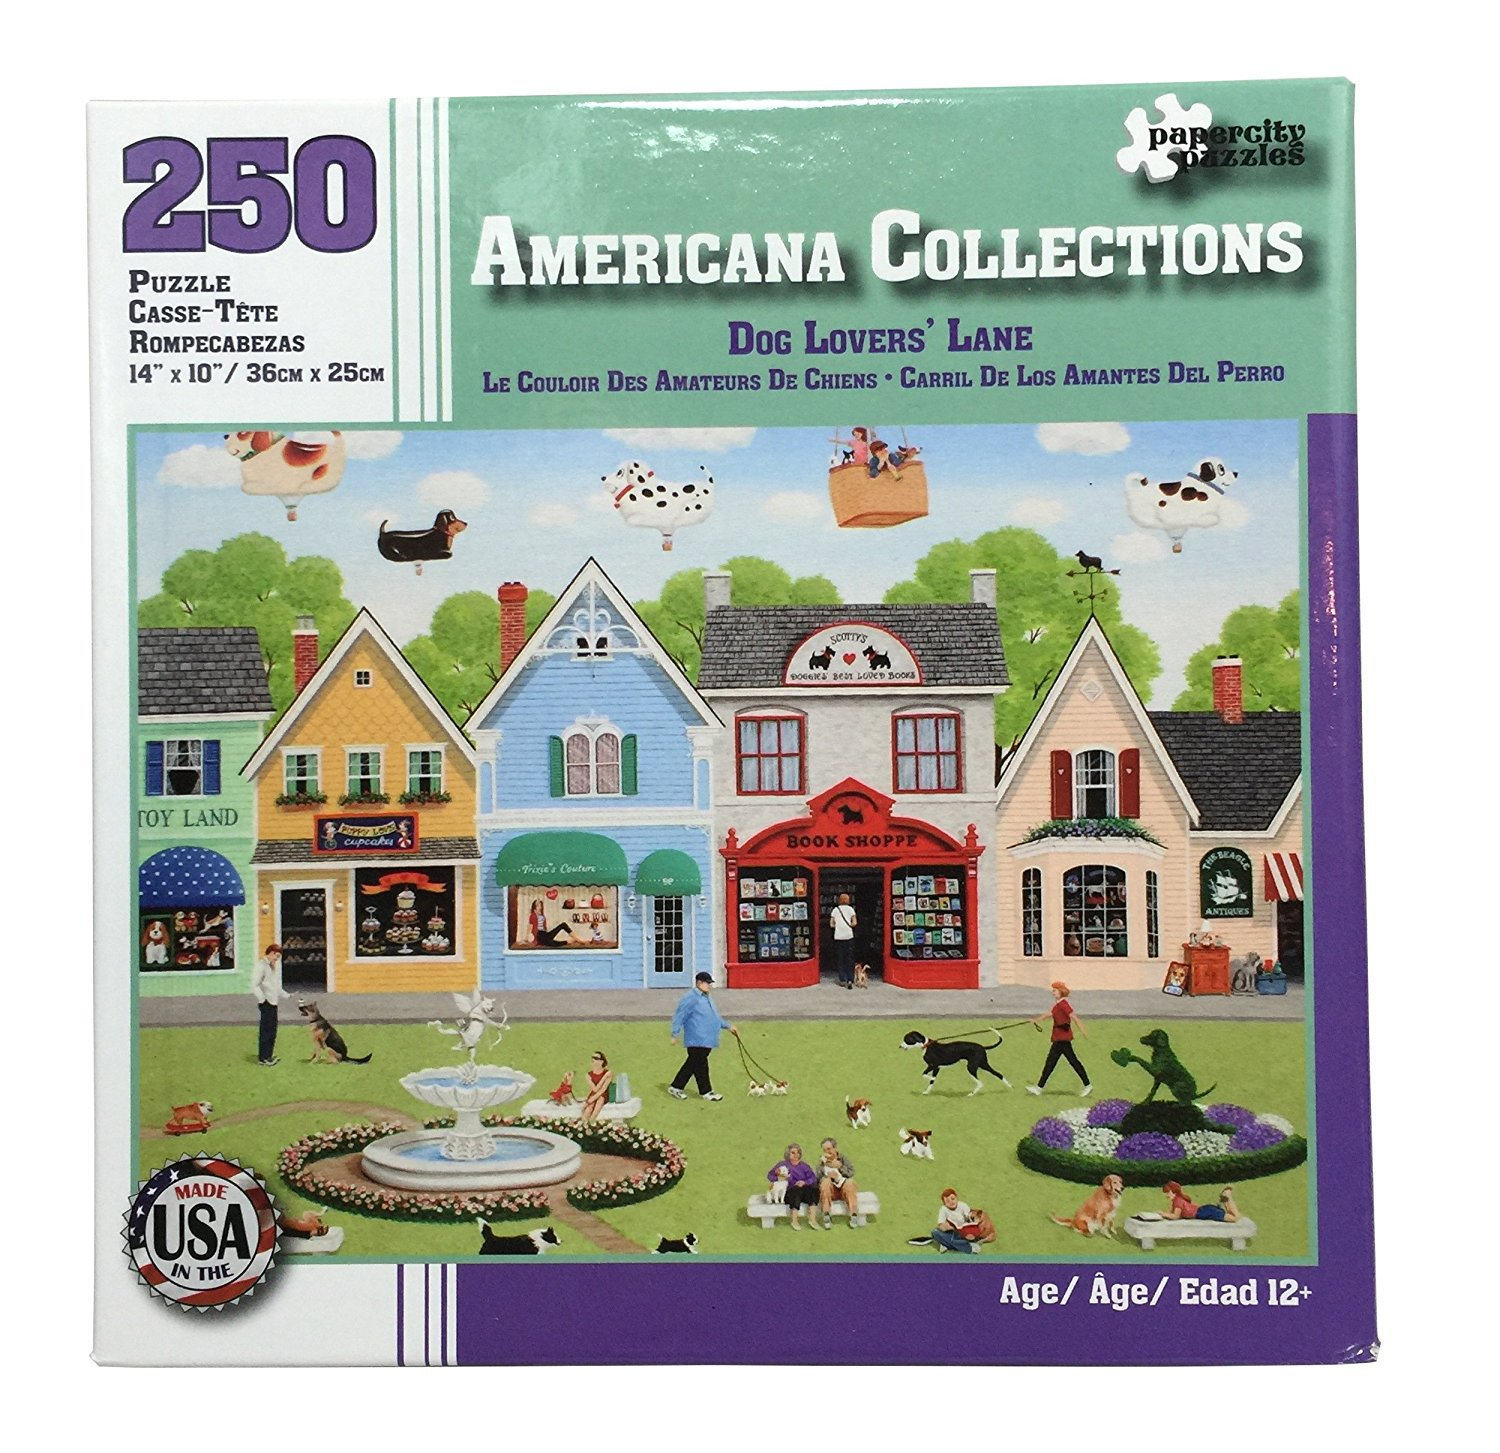 Americana Collections 250pc. Puzzle Dog Lovers Lane